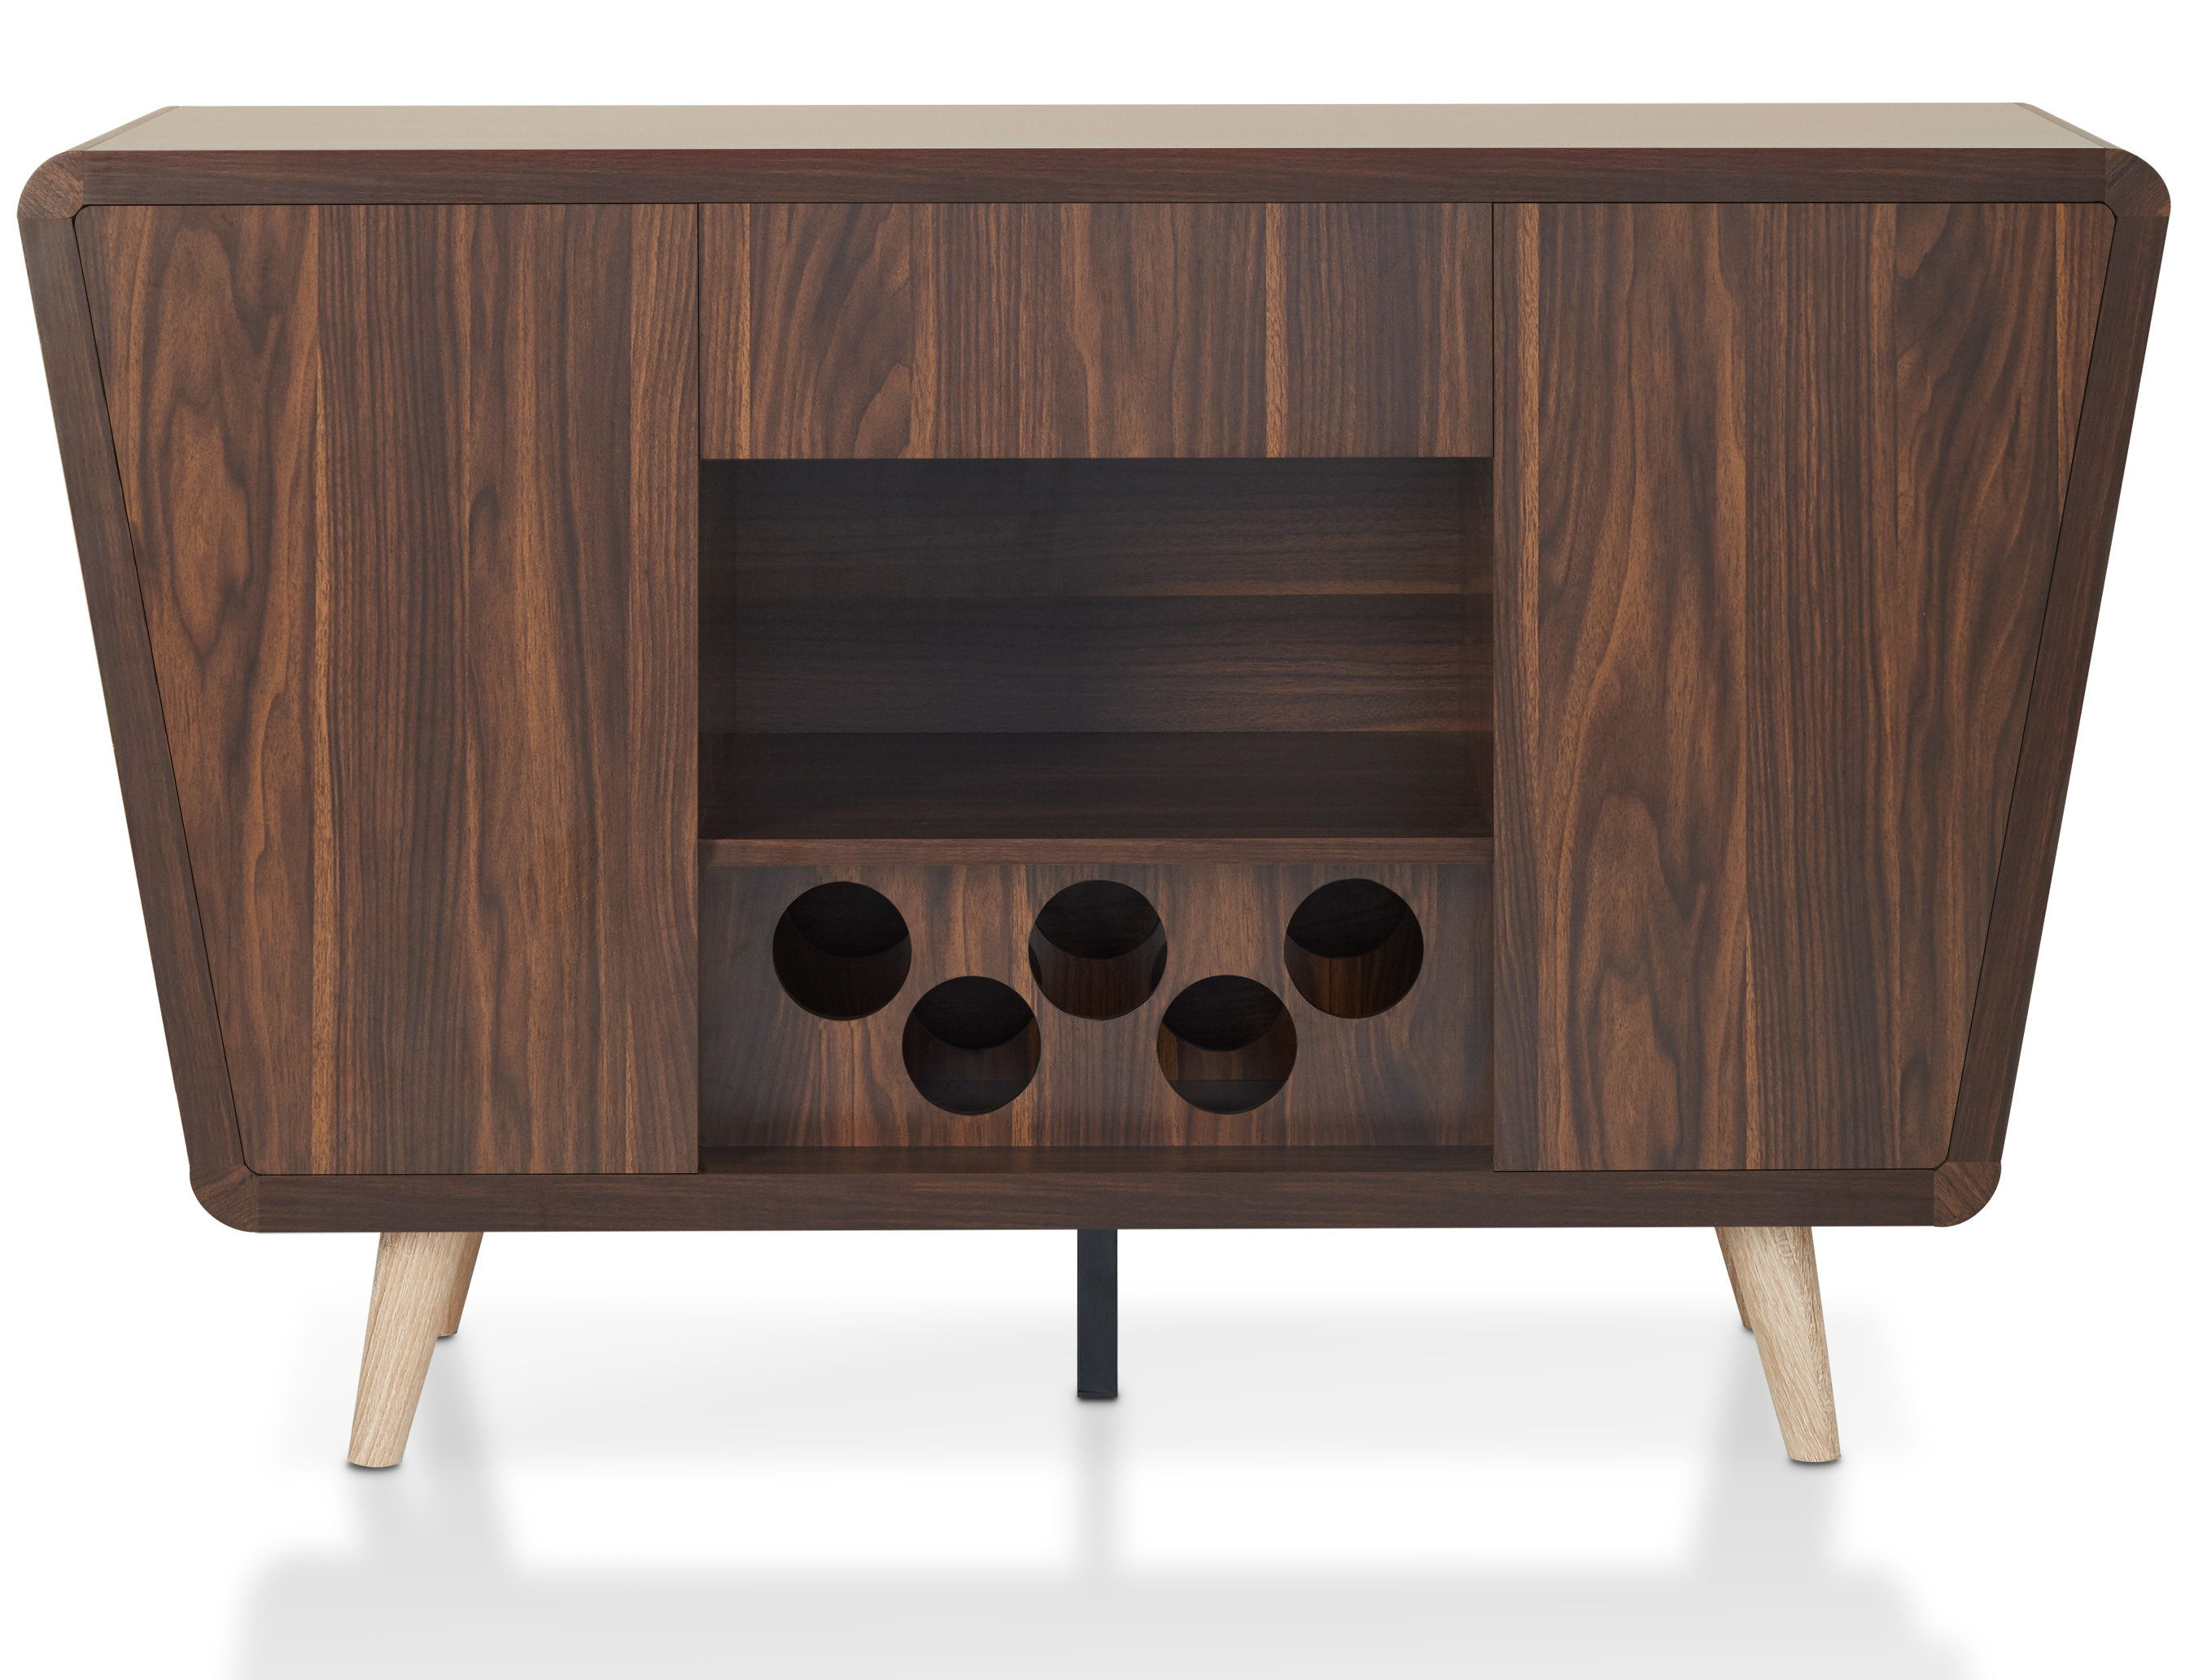 Wendell Sideboards Intended For 2020 Modern Wade Logan Sideboards + Buffets (View 18 of 20)